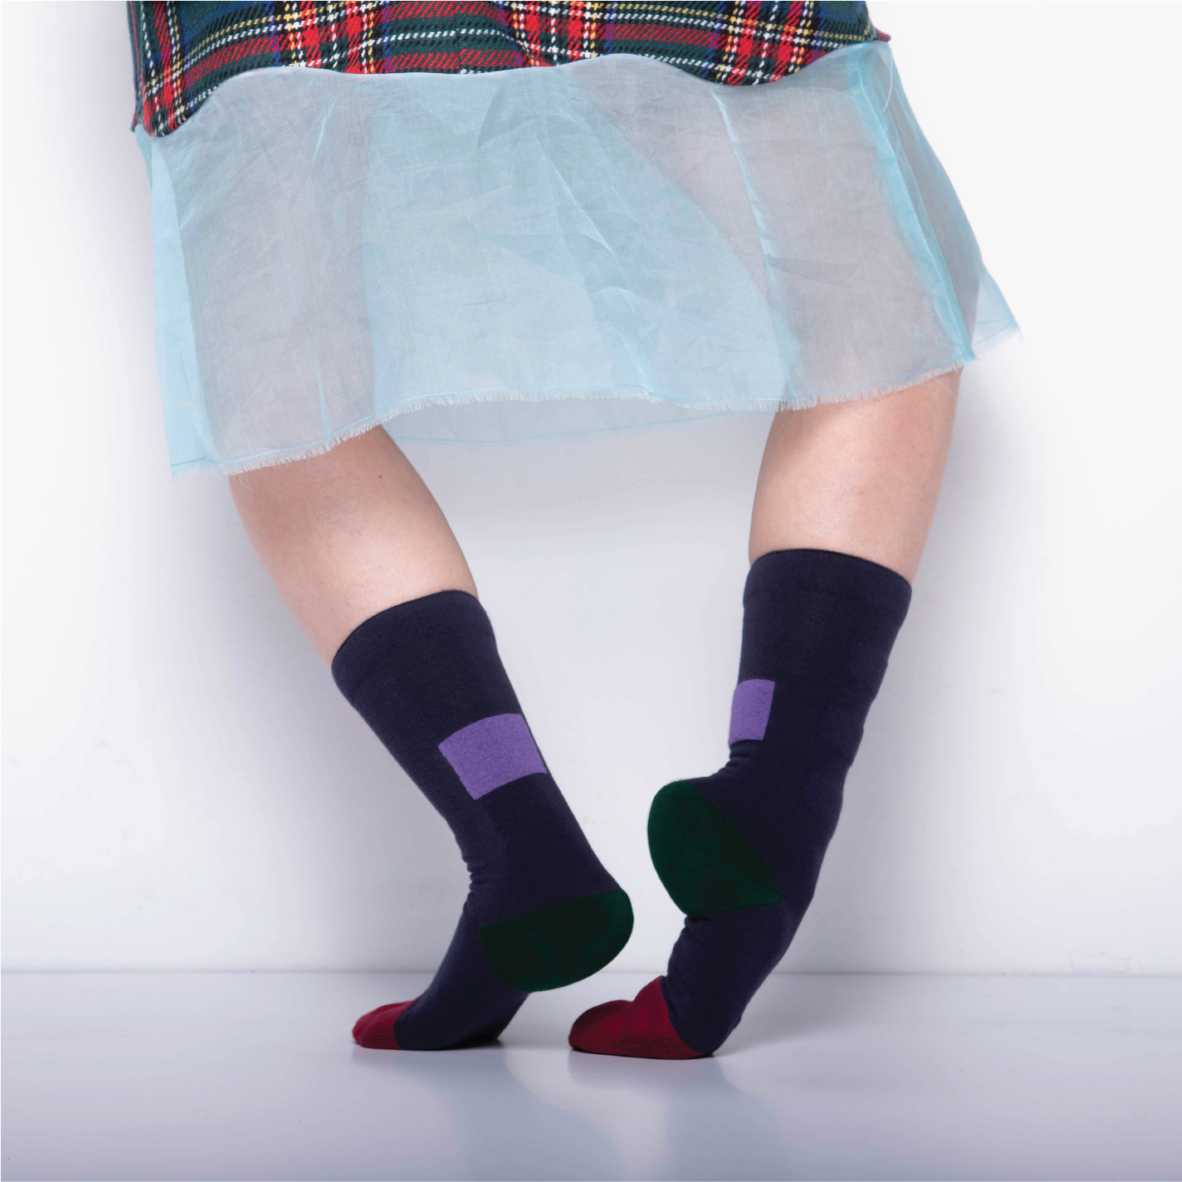 MY INNER BEAUTY: MINDA | Biking Red & Dark Blue | Reversible Patterned Socks